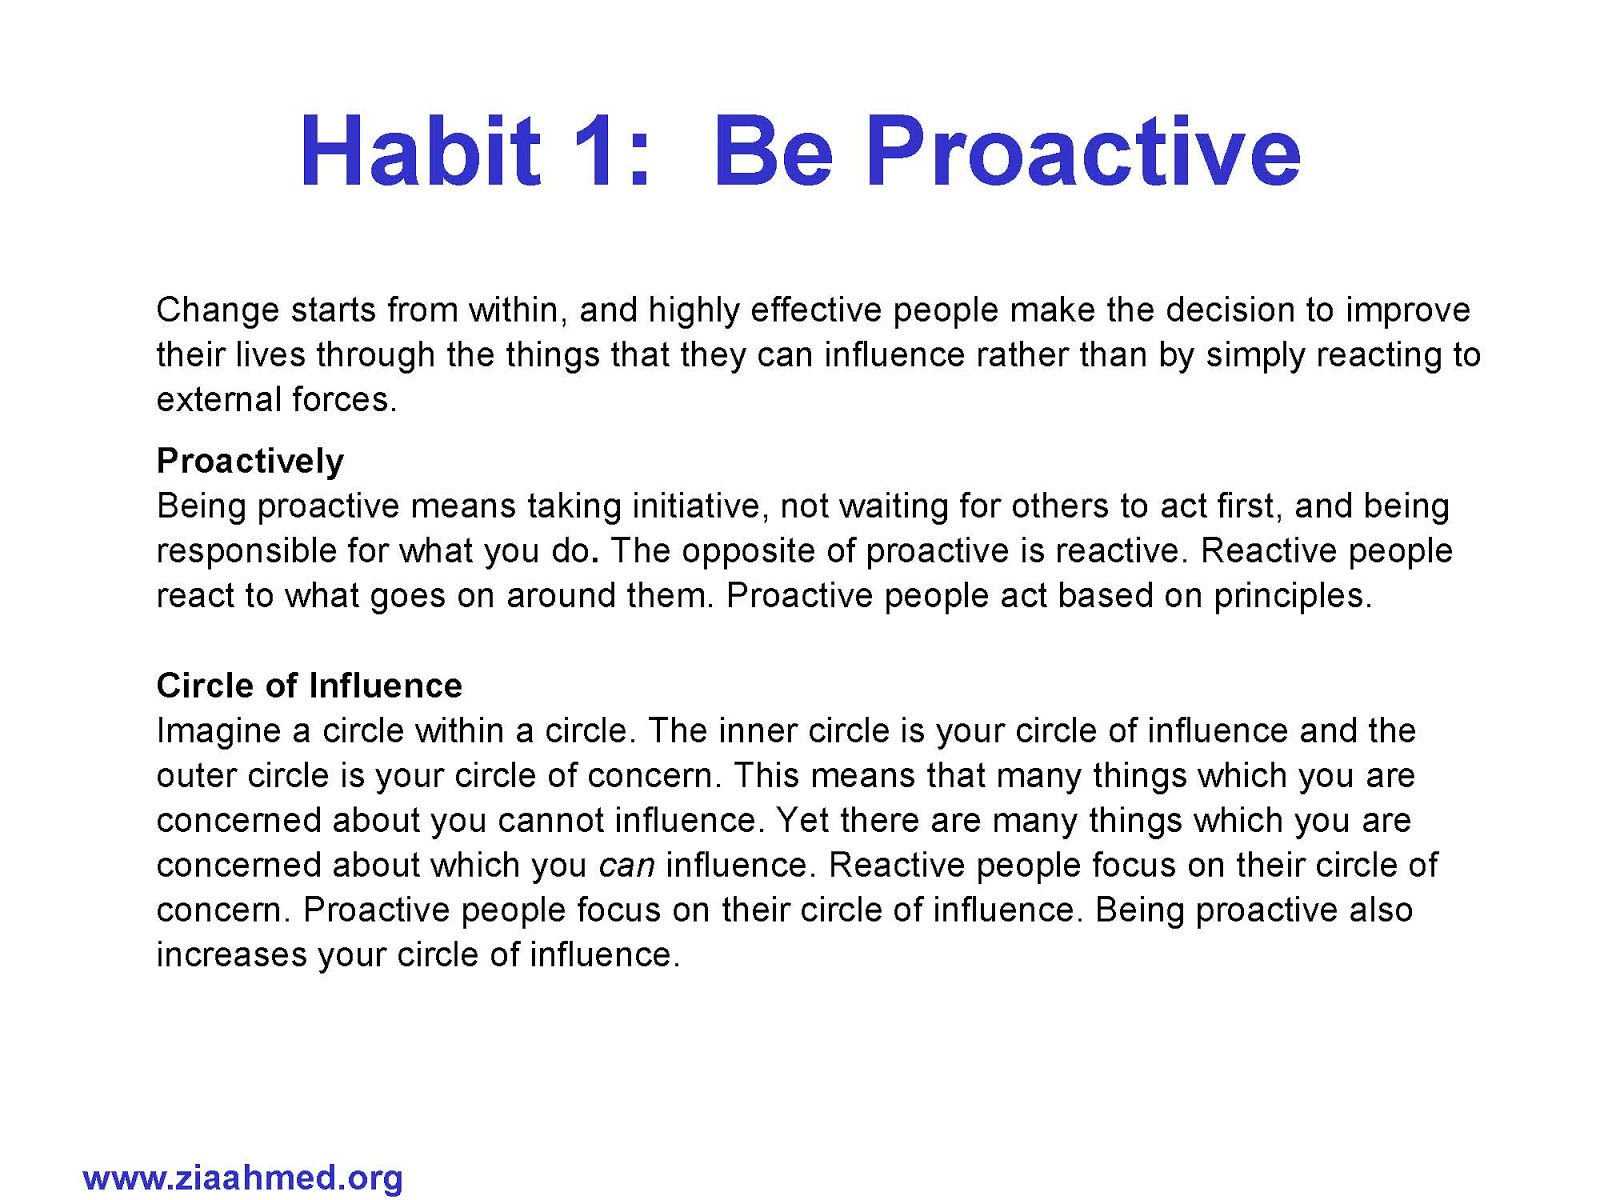 29 Habit 1 Be Proactive Worksheet